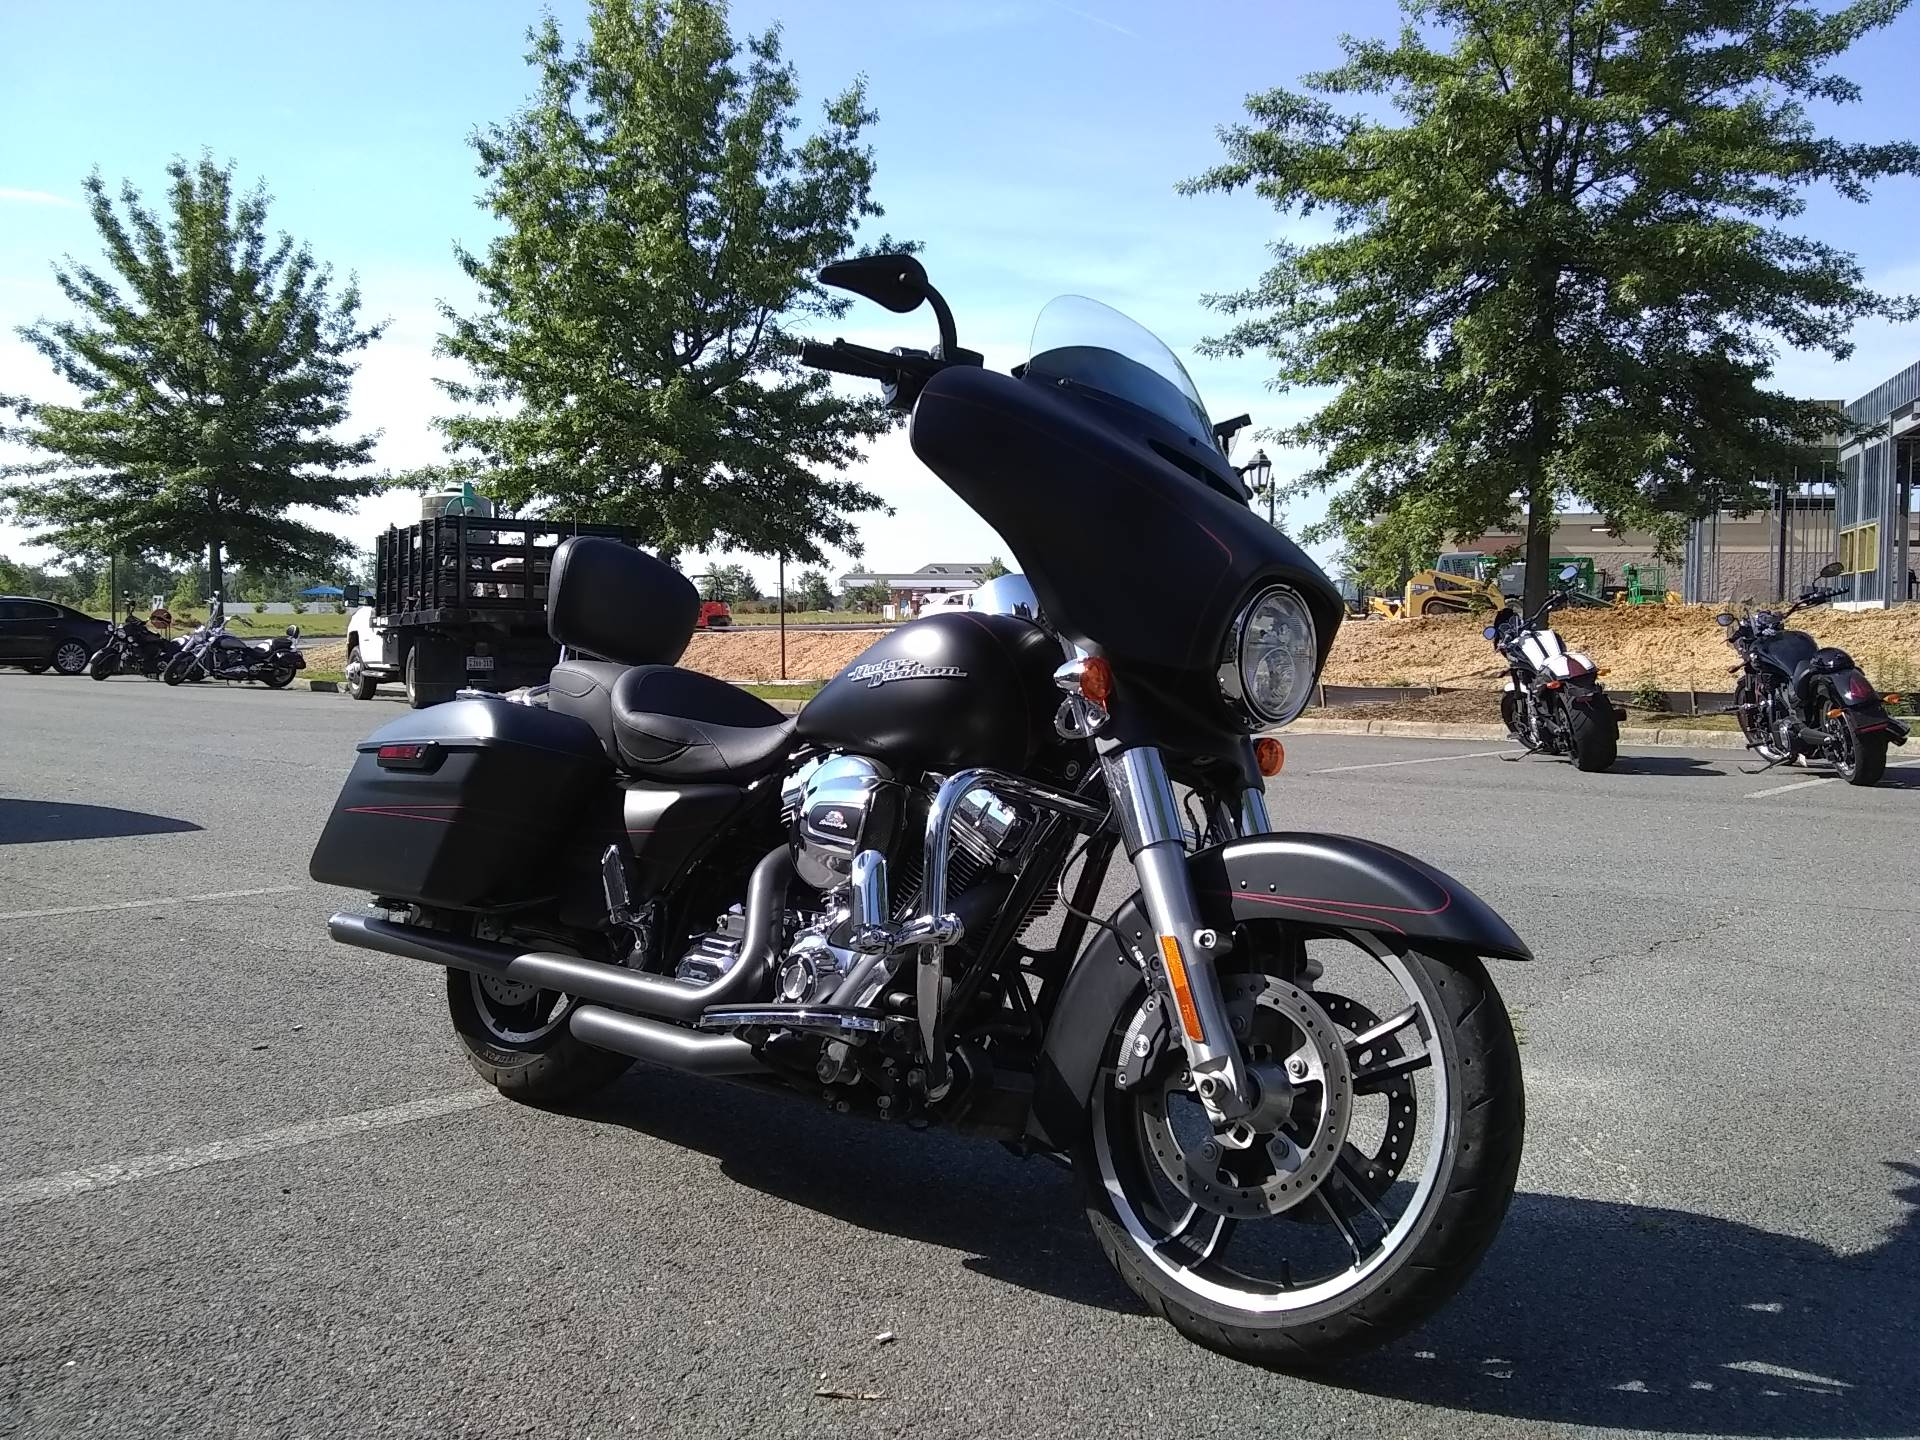 2016 HARLEY DAVIDSON Street Glide Special in Fredericksburg, Virginia - Photo 4